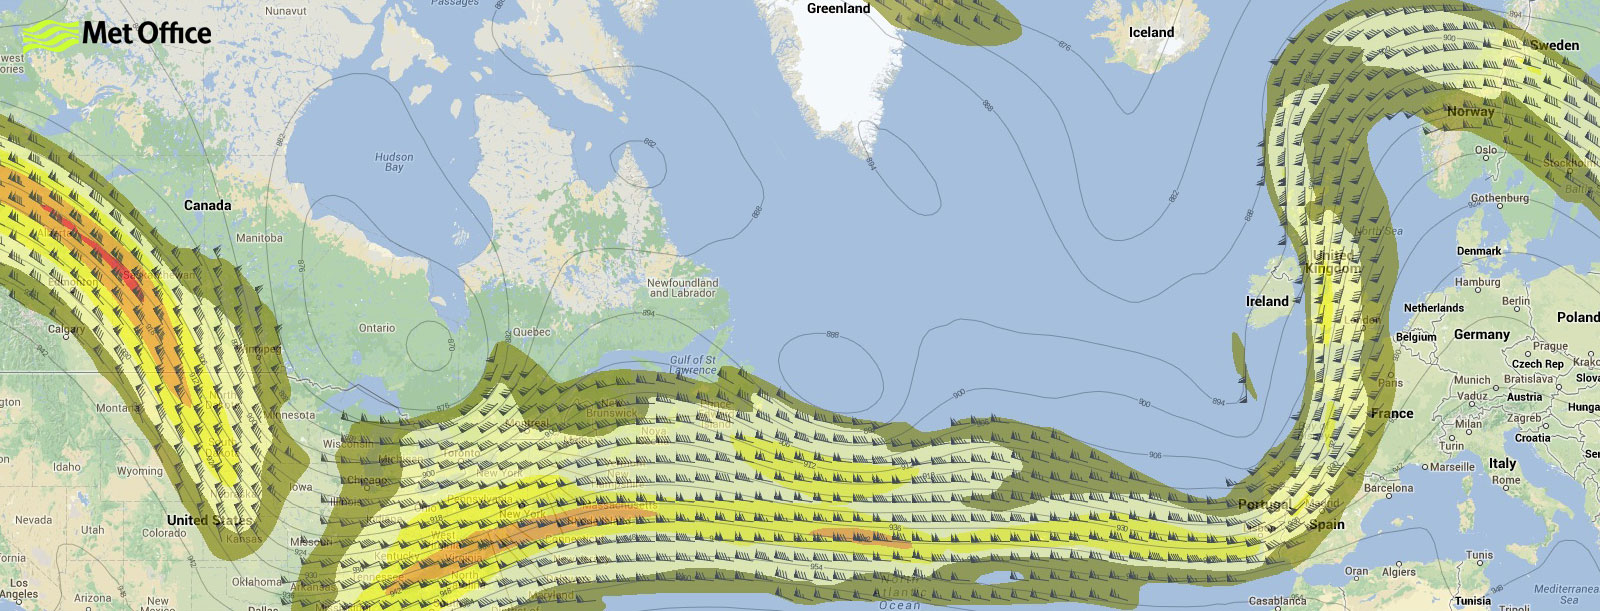 UKs Unsettled Weather And The Jet Stream Official Blog Of The - Us jet stream forecast map